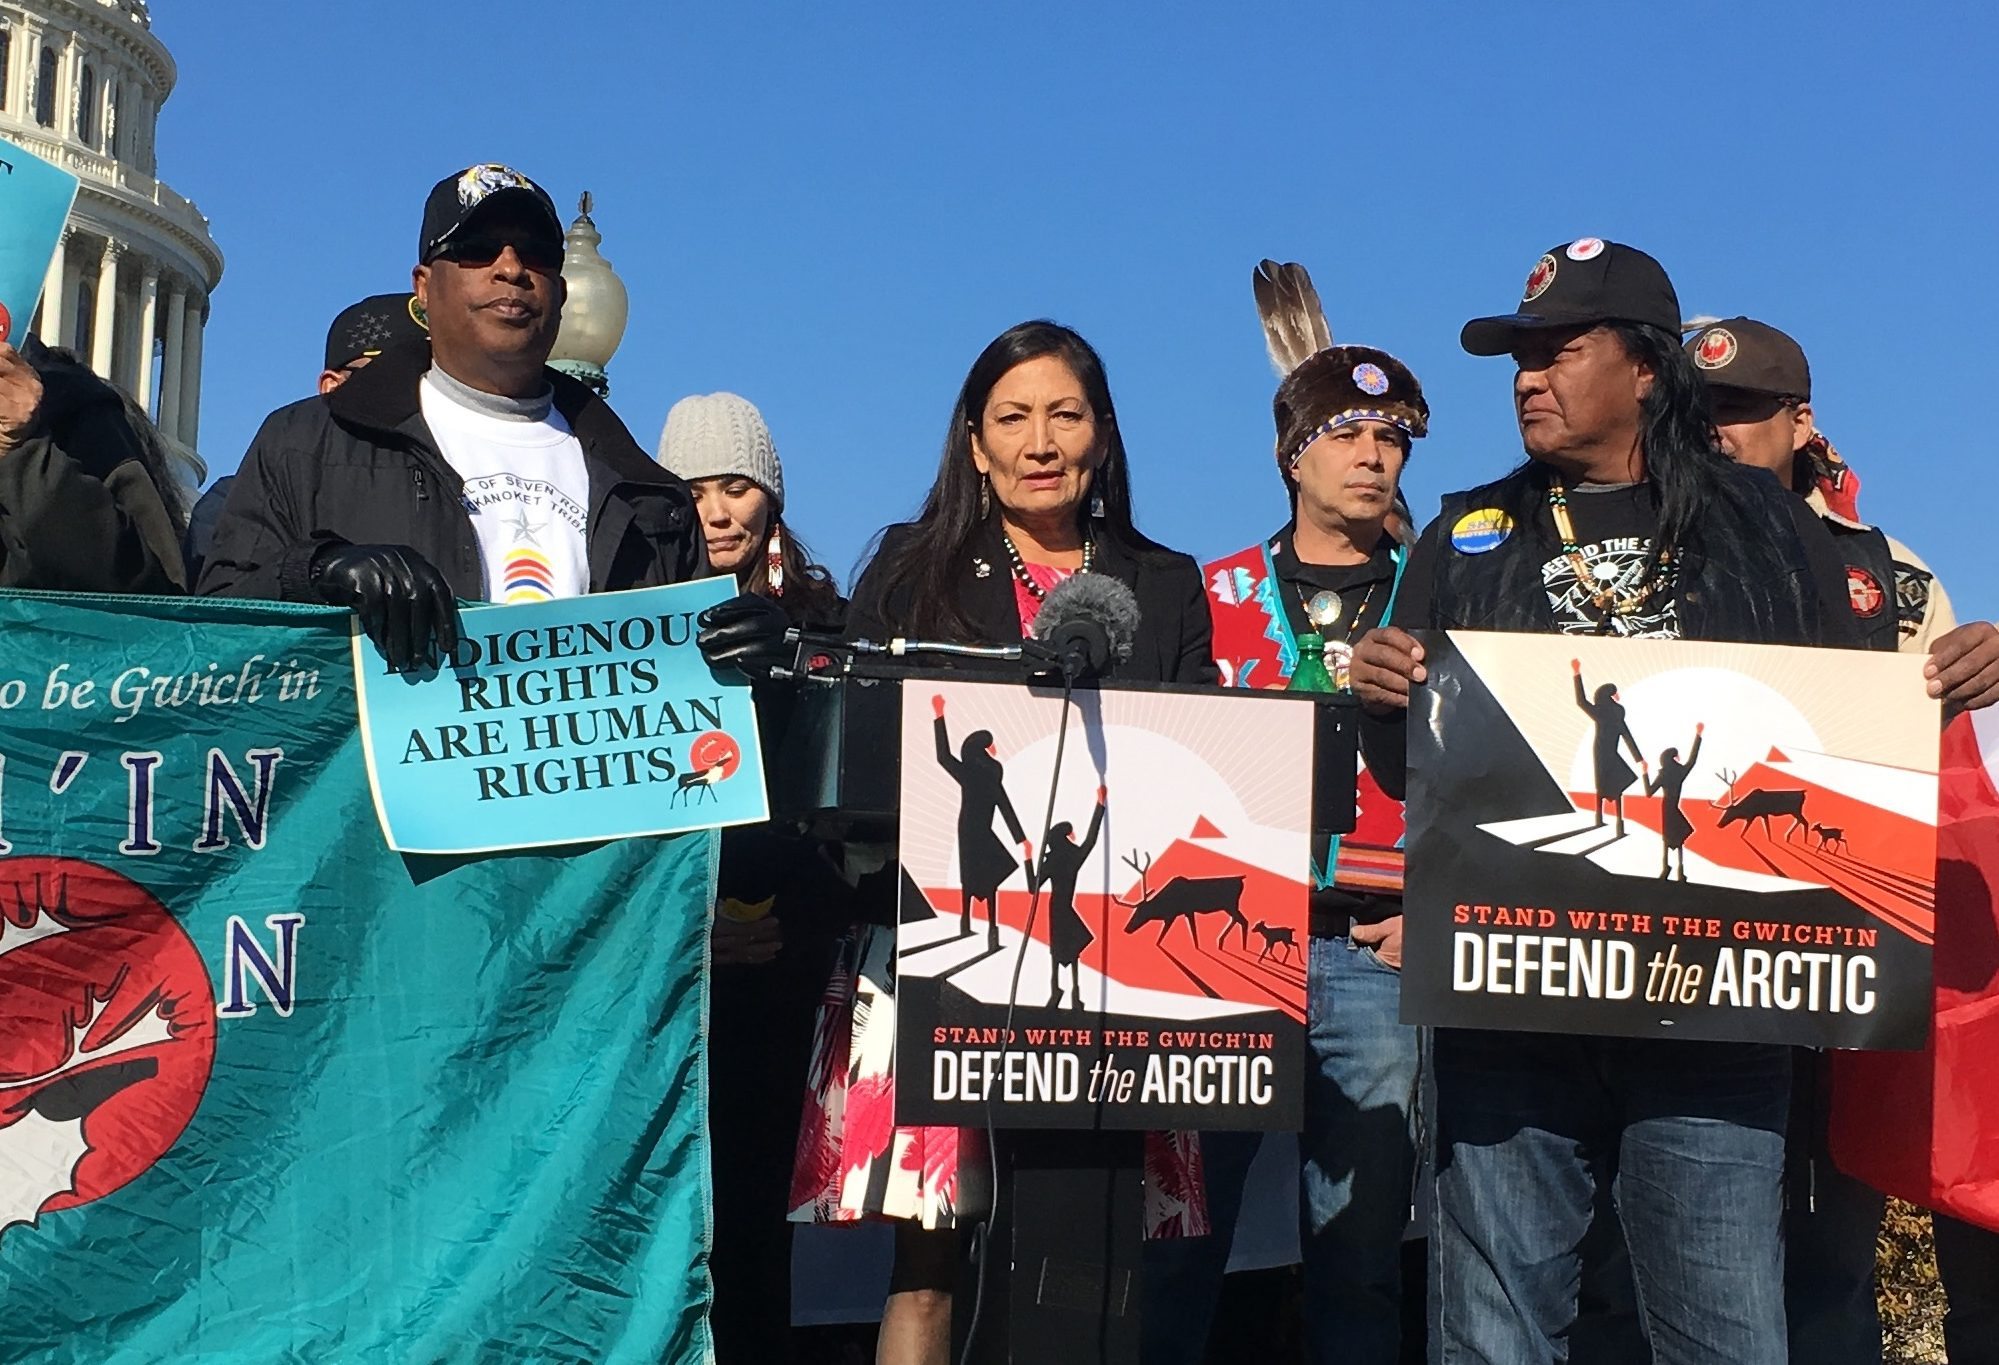 People standing in front of white capitol dome holding banners that say protect the Arctic.